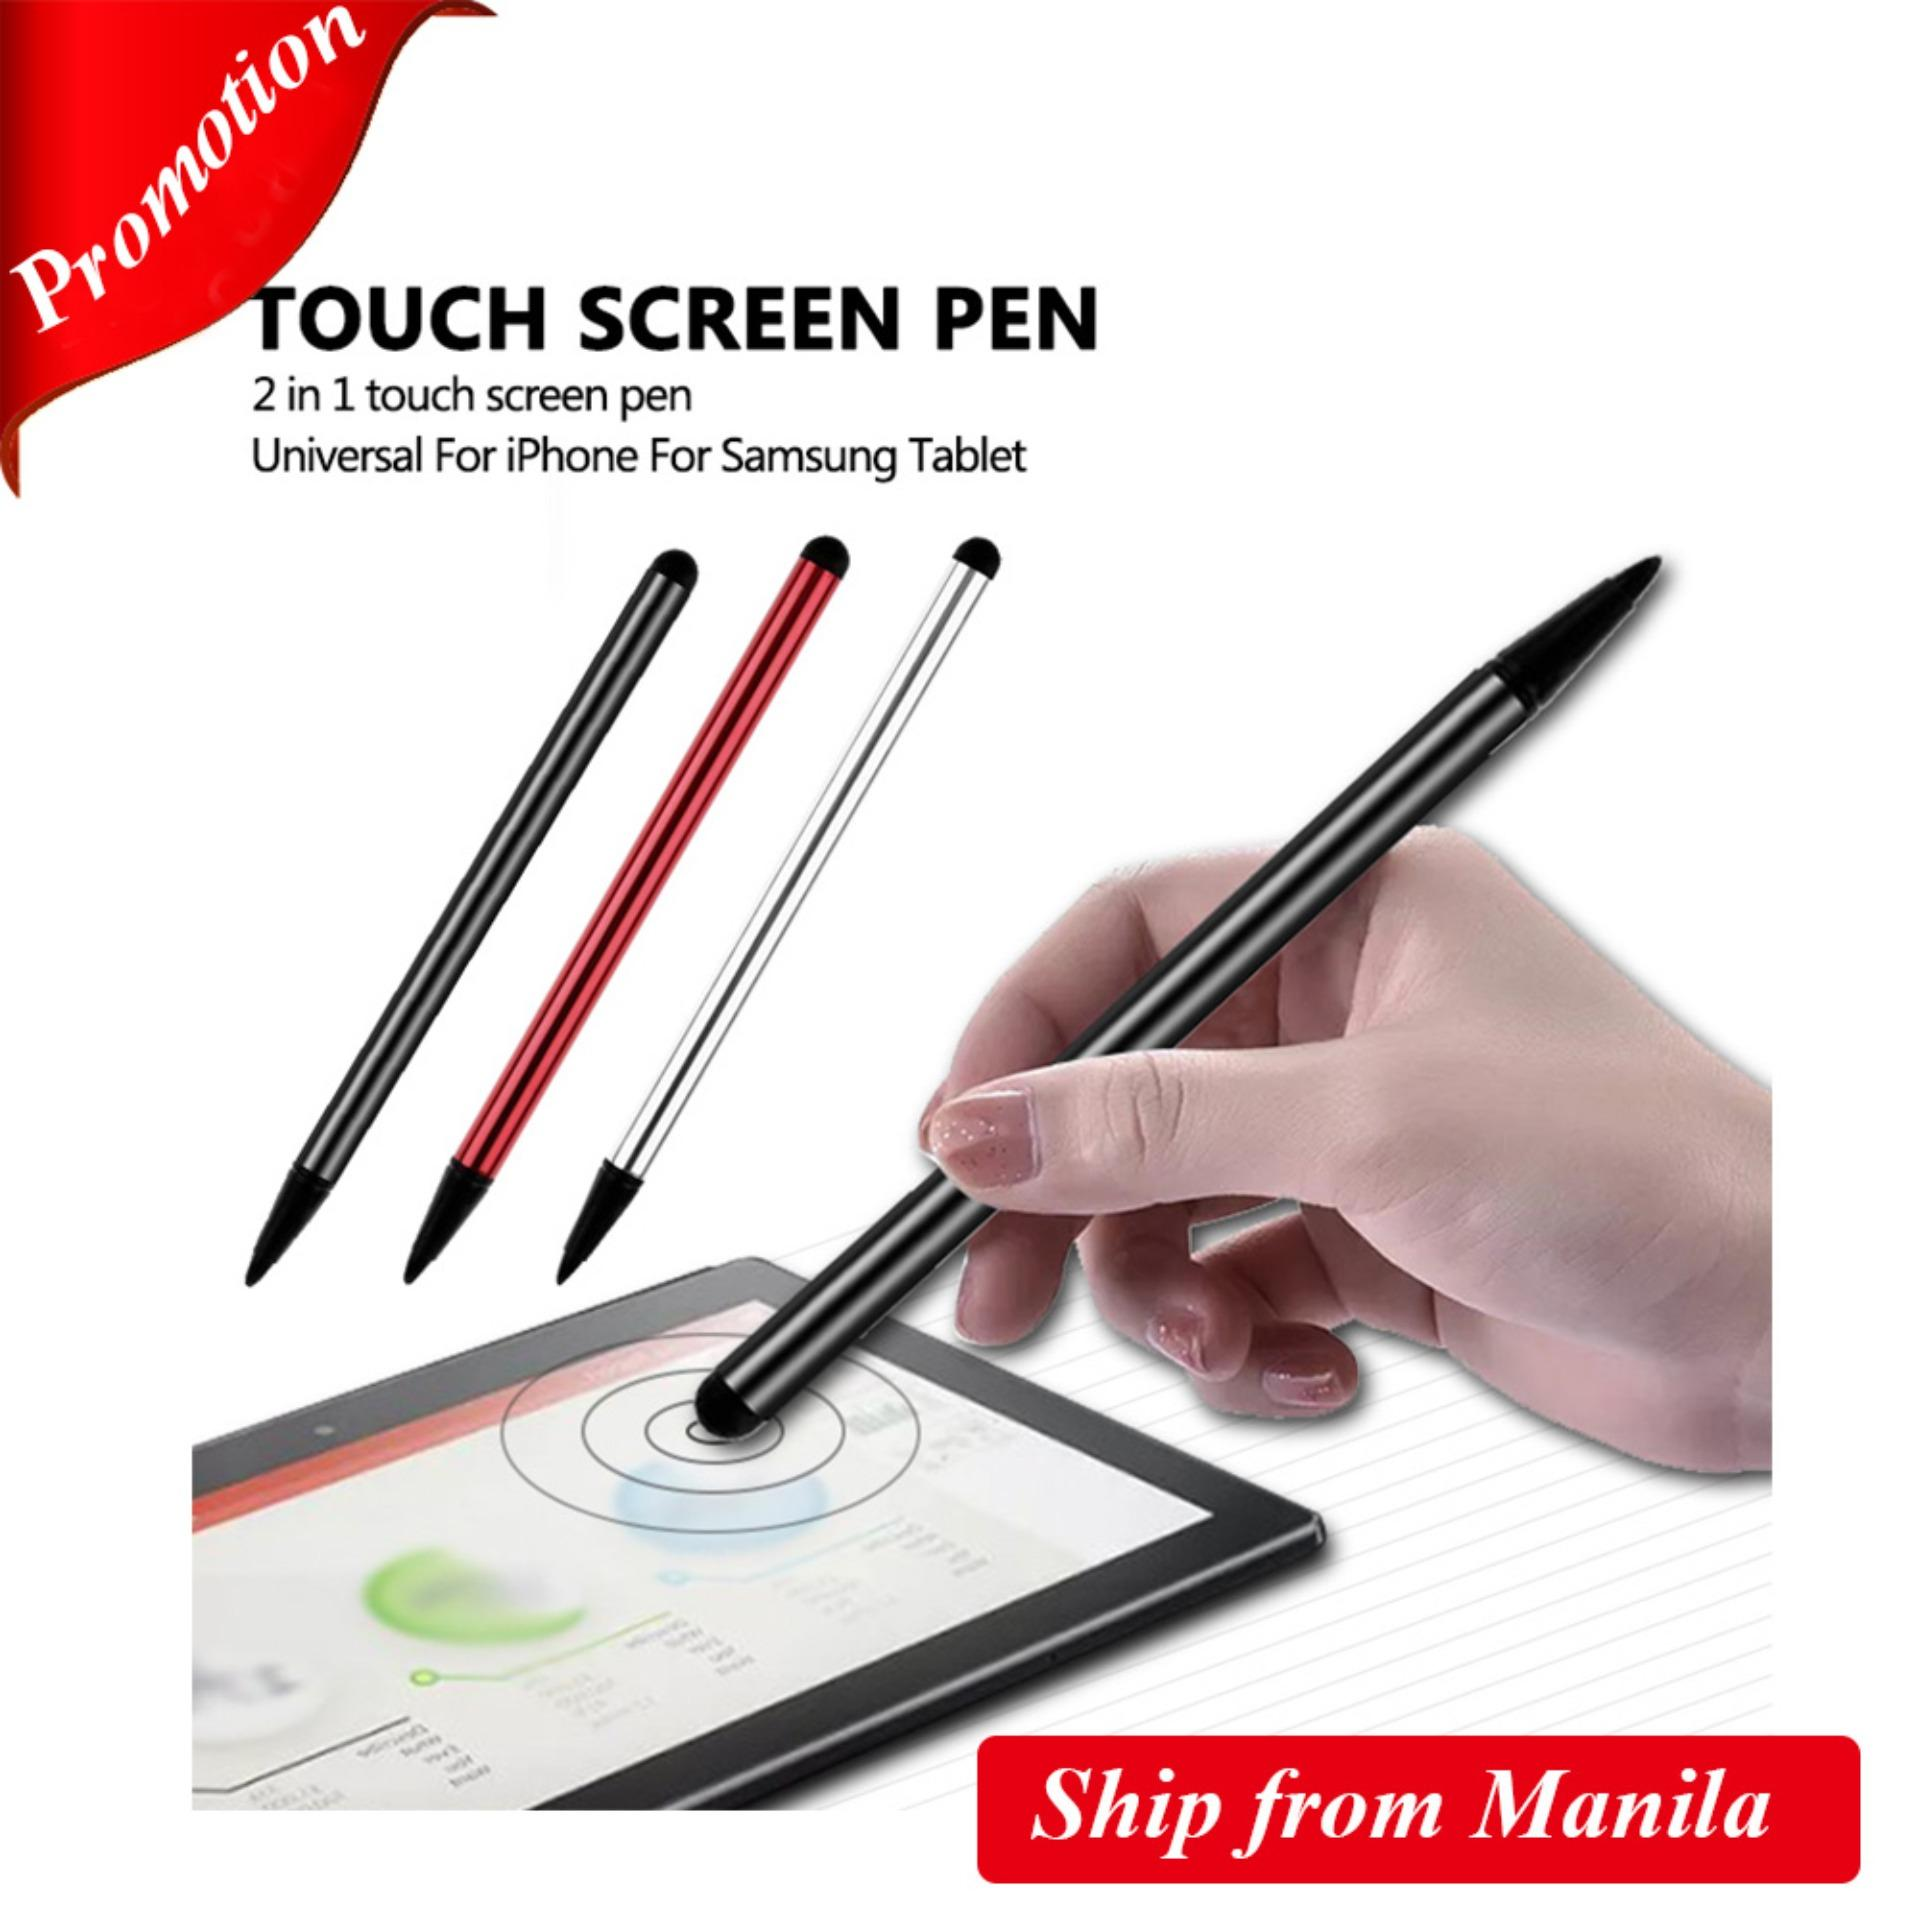 TouchScreen Double-end Capacitive pen / resistance pen Stylus Universal For  iPhone For Samsung Tablet Phone PC Touch Screen Pen